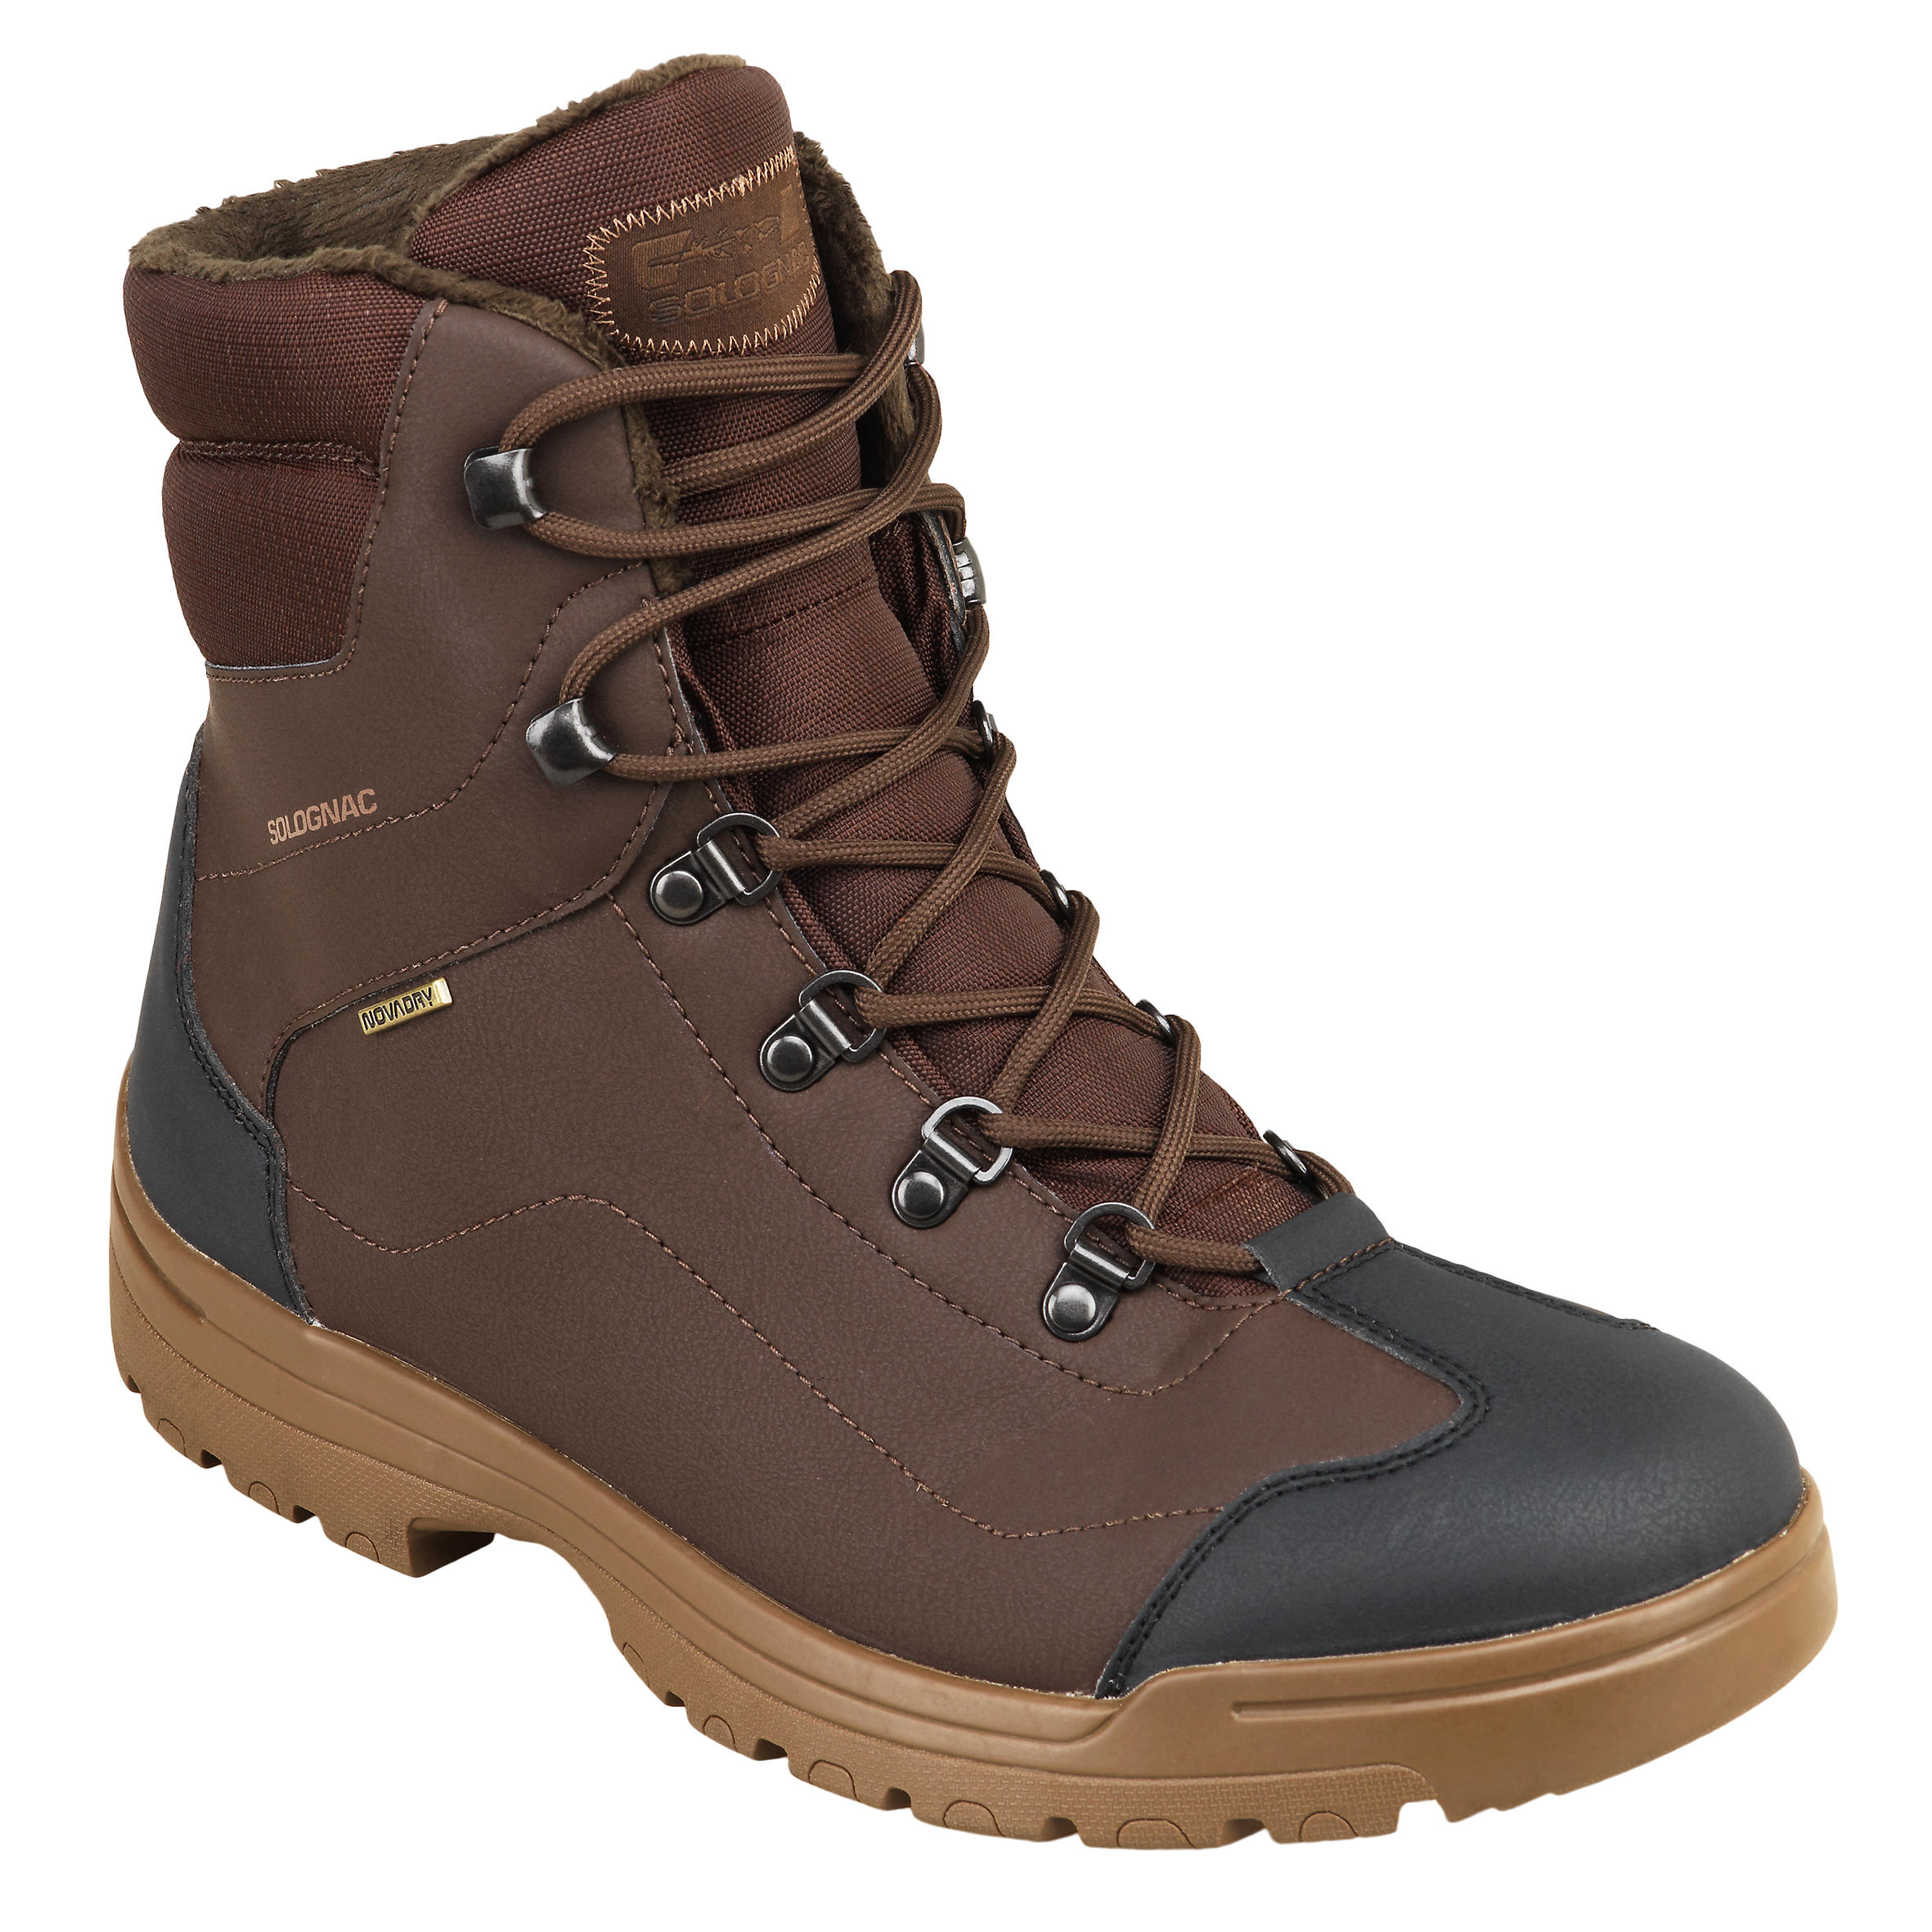 Land 100 Warm Hunting Boots - Brown